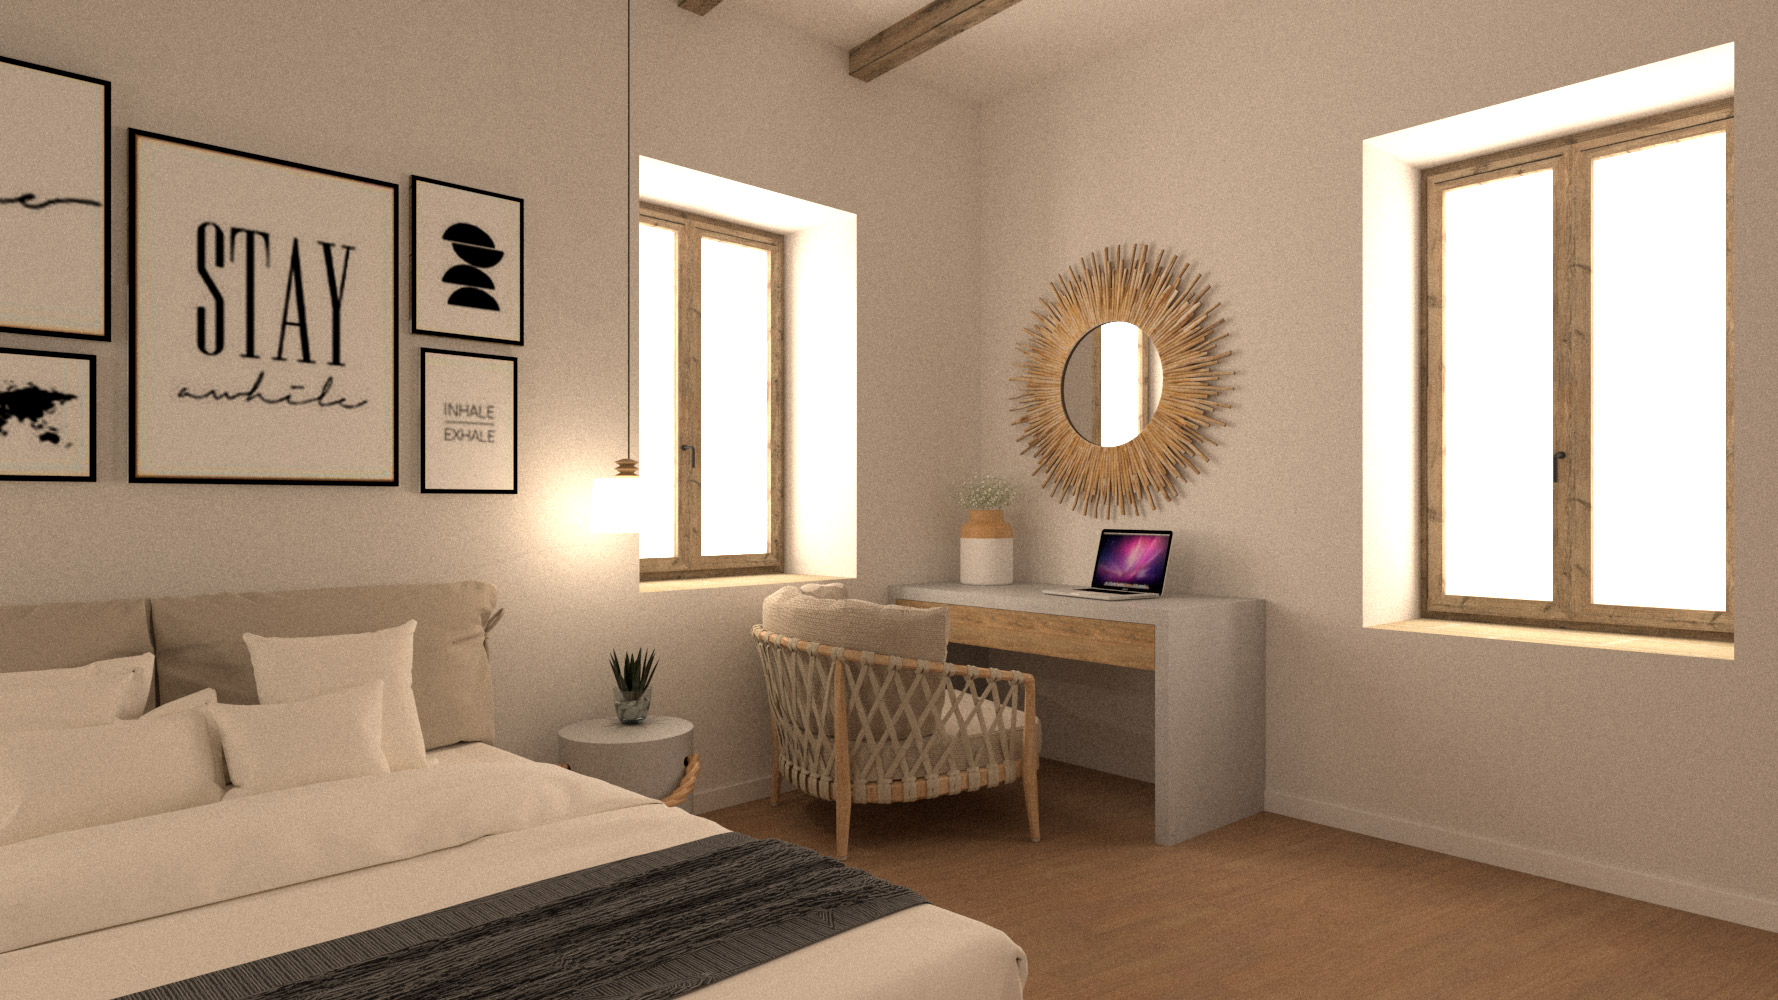 bnb house in Chania